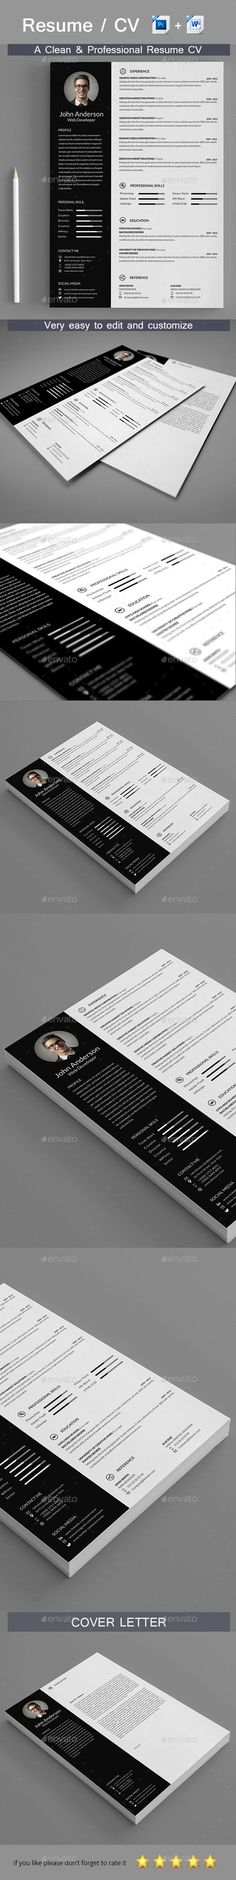 Flash Resume Template Creative resume templates, Font logo and Fonts - photoshop resume templates